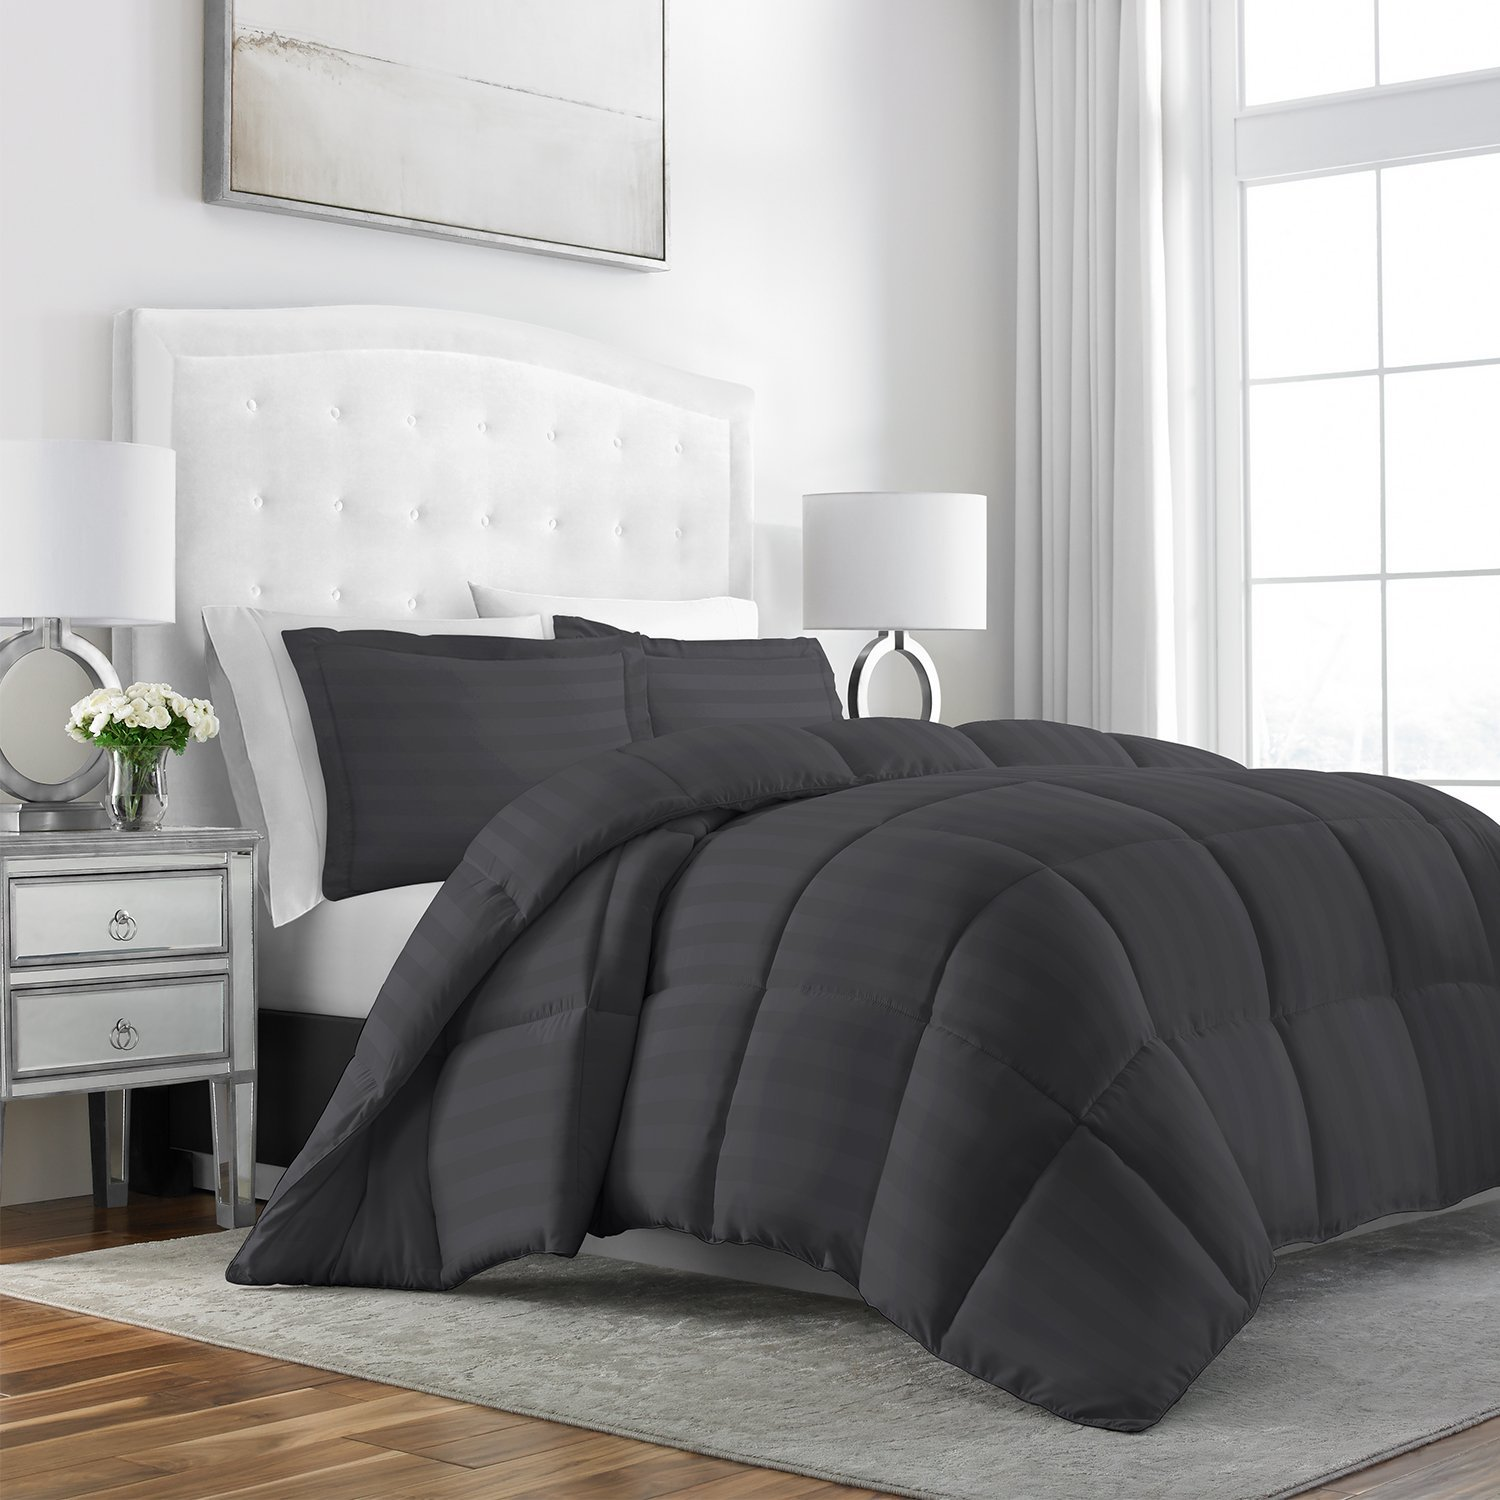 Sleep Restoration Luxury Goose Down Alternative Dobby Striped Comforter 3-Piece Set - Premium Hypoallergenic All Season Duvet Set - Twin/Twin XL - Gray